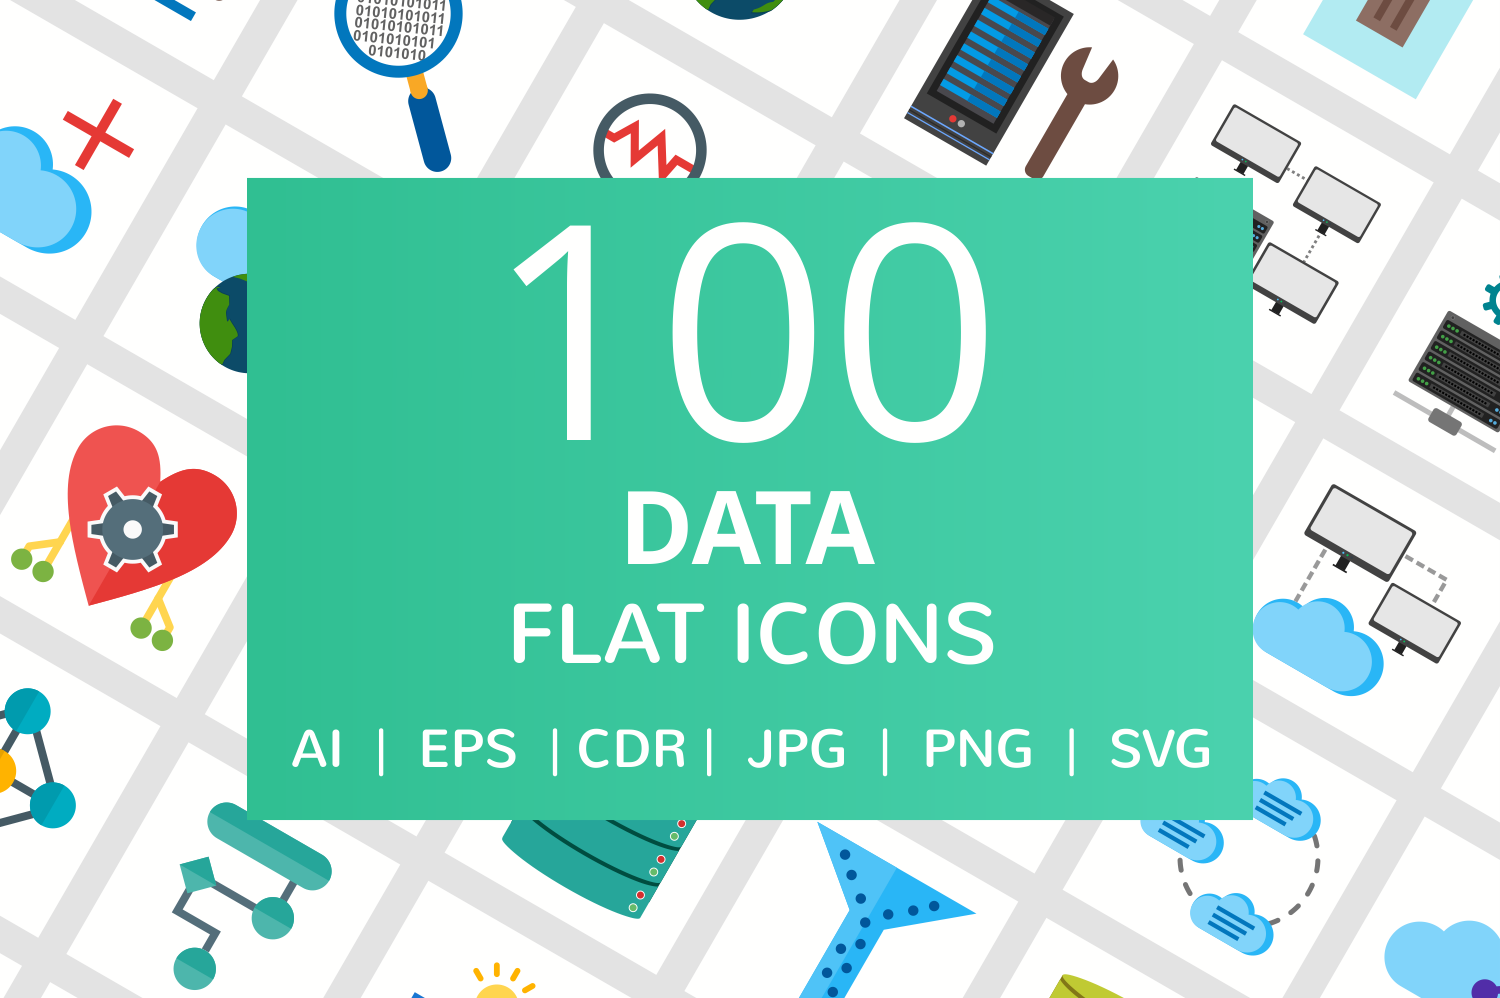 100 Data Flat Icons example image 1